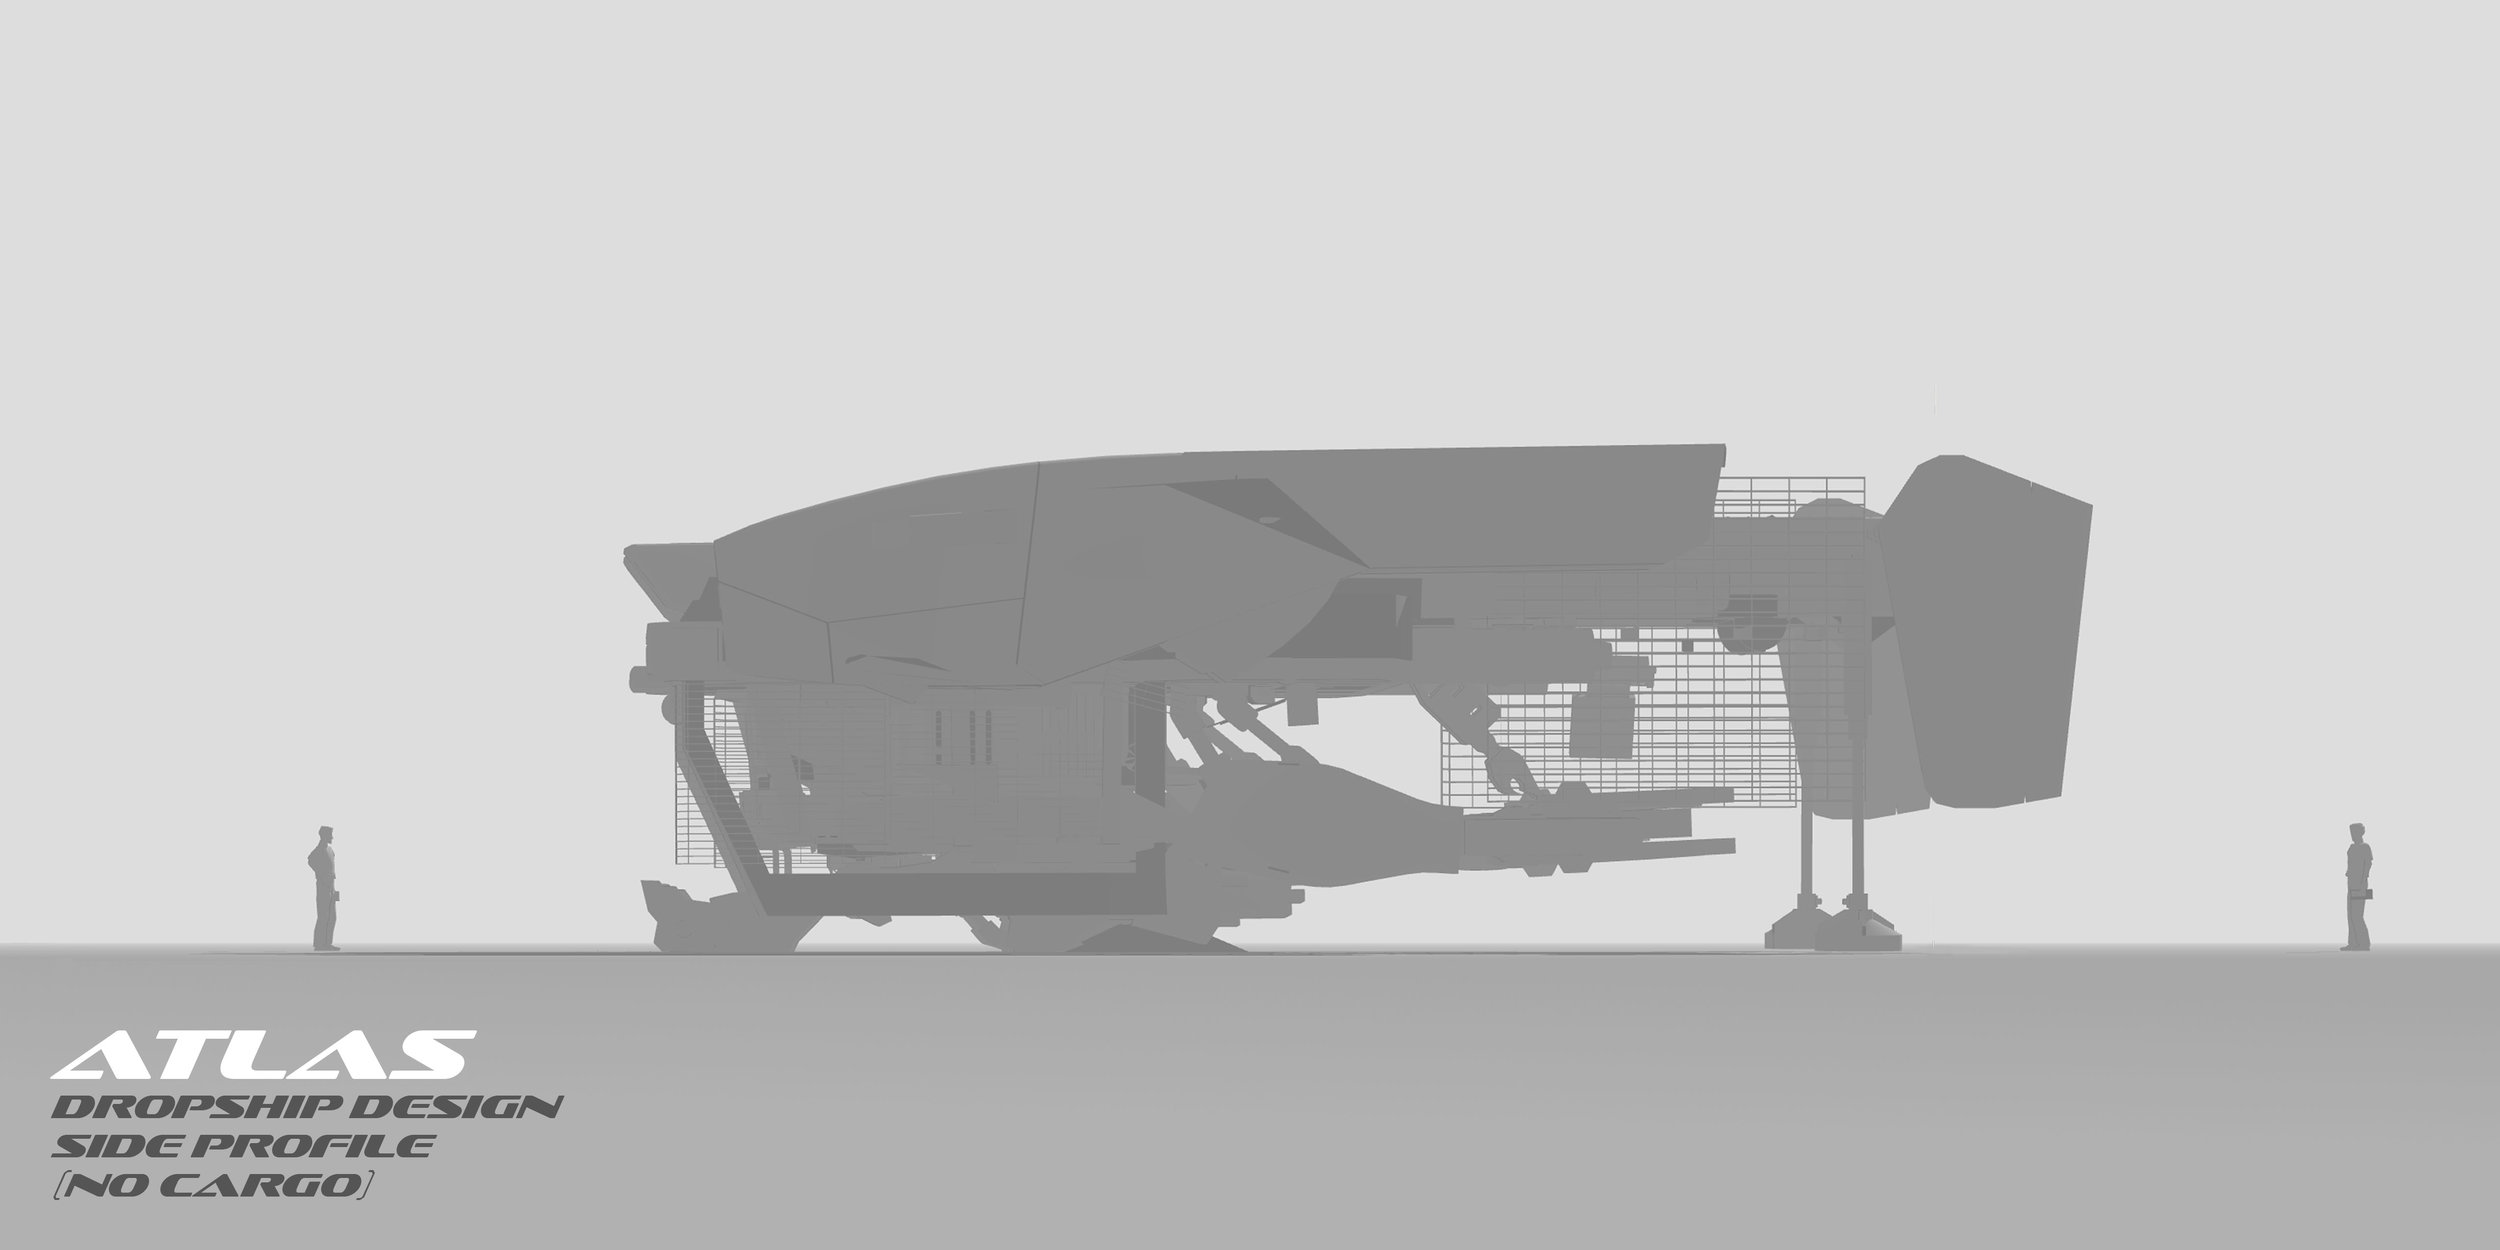 Atlas Drop ship designside profile nc.jpg